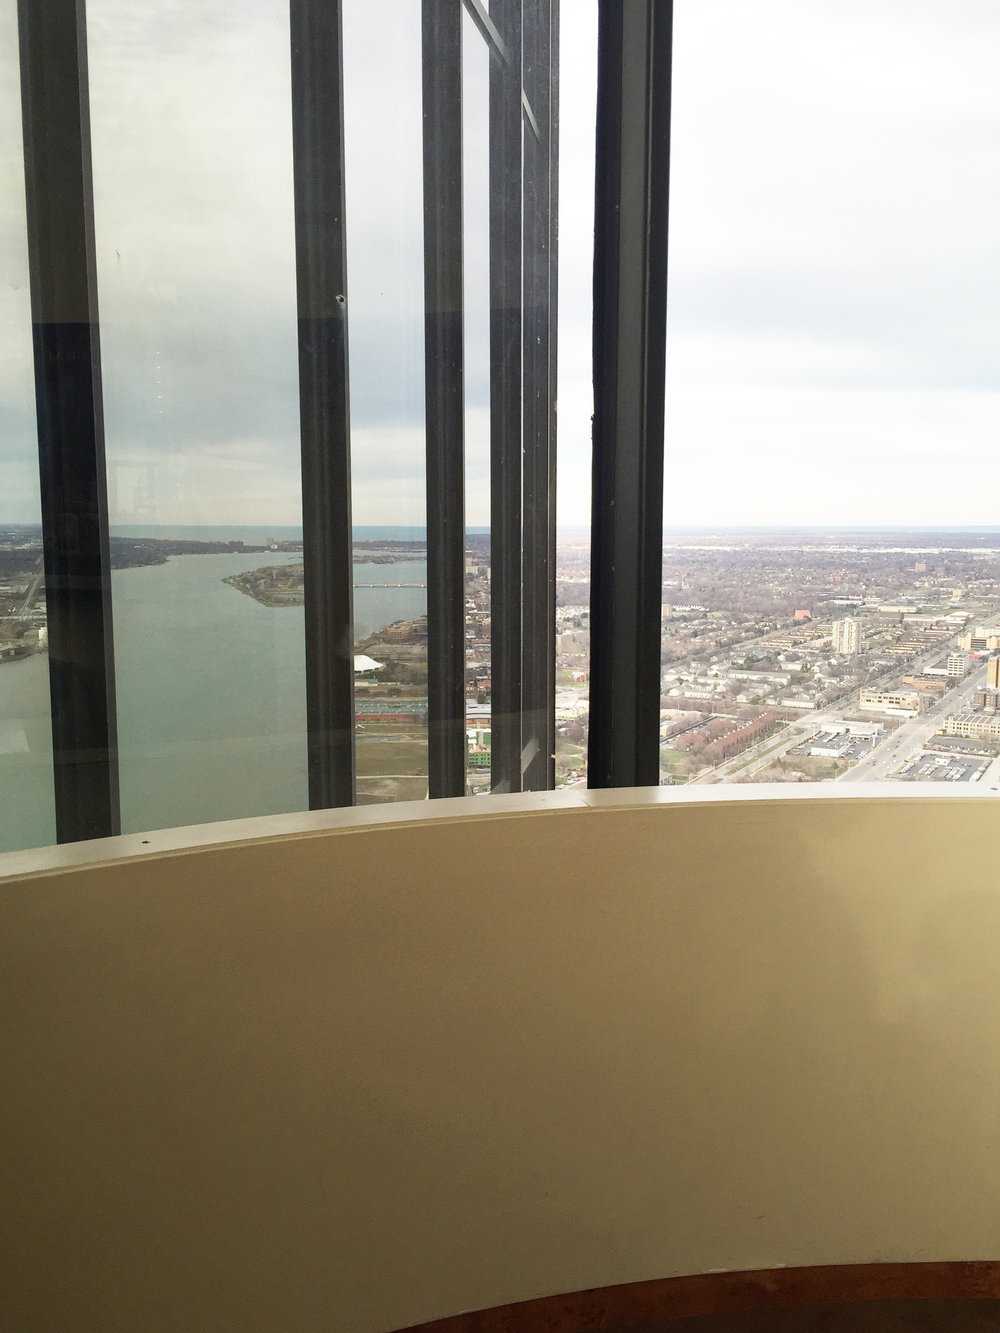 In this photo, taken from the top of the Renaissance Center, the left half is actually a reflection of the river on the windows of the building.